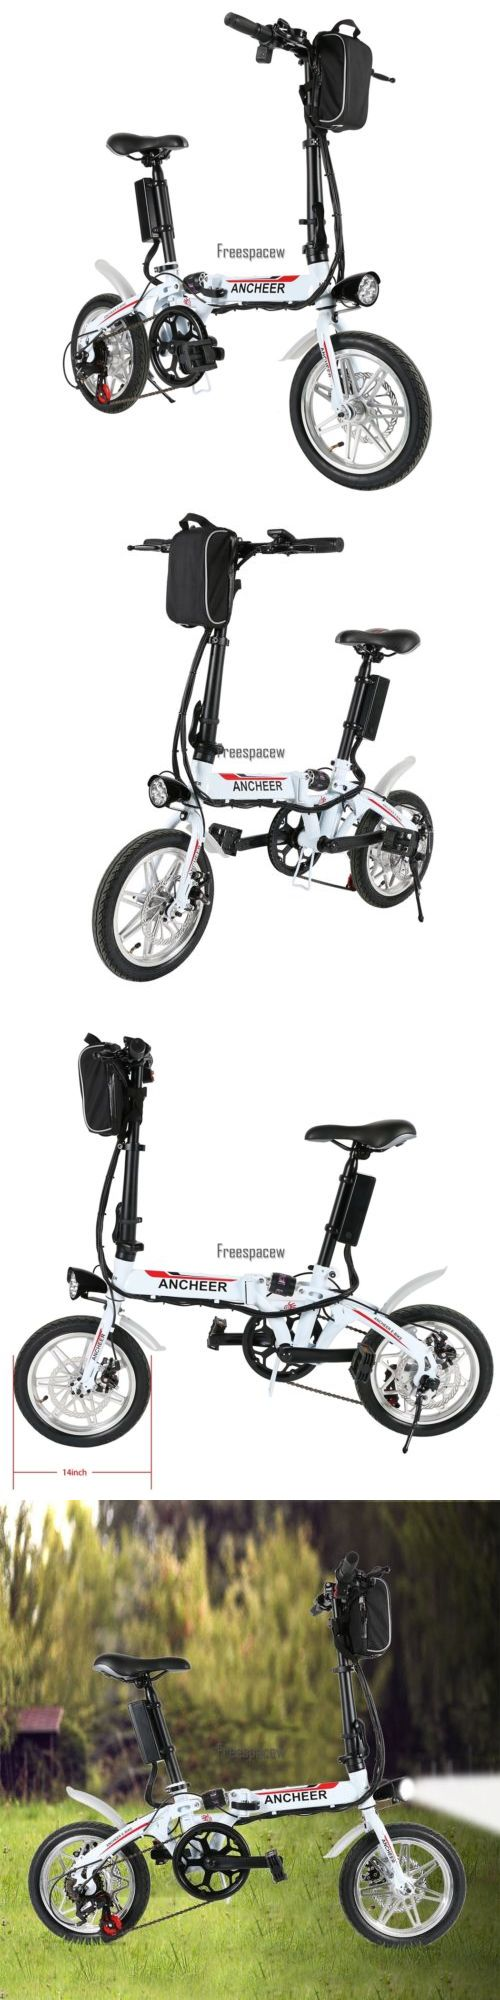 Electric Bicycles 74469: 14 Folding Electric Bike Cycling 36V 250W E-Bike Bicycle Fast Usb Charging -> BUY IT NOW ONLY: $445.25 on eBay!